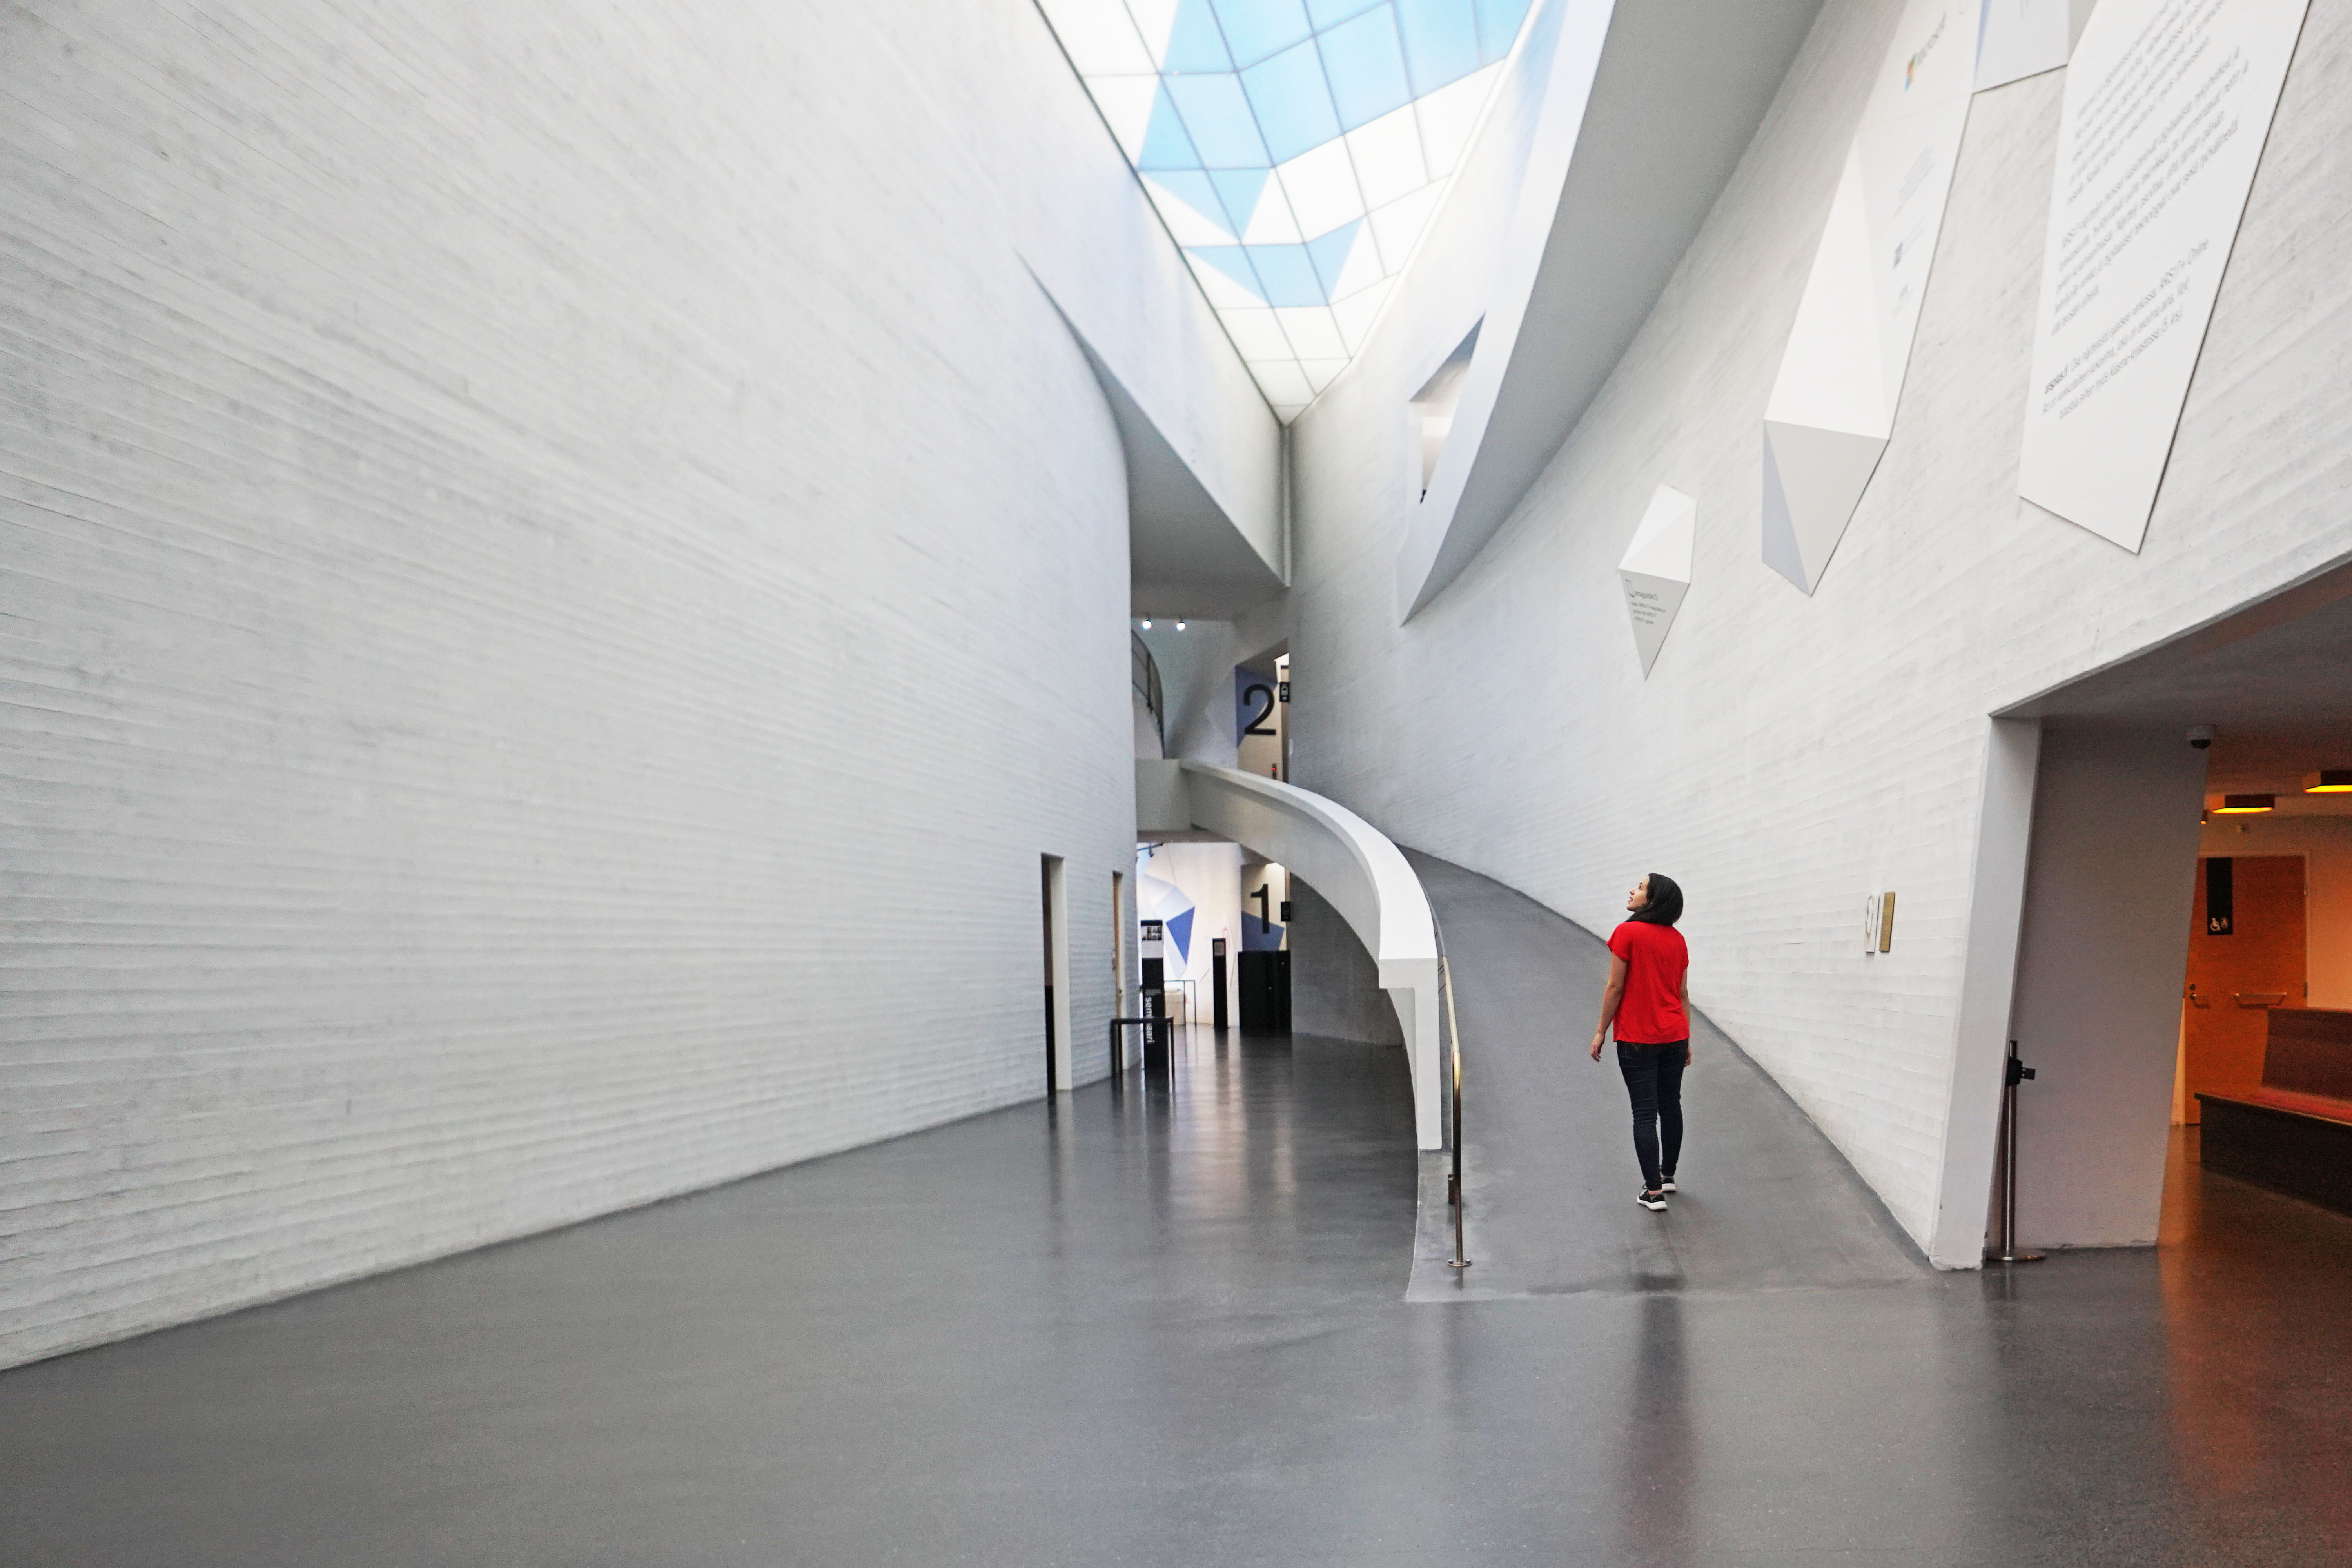 Woman inside large white curved building and curved ramp